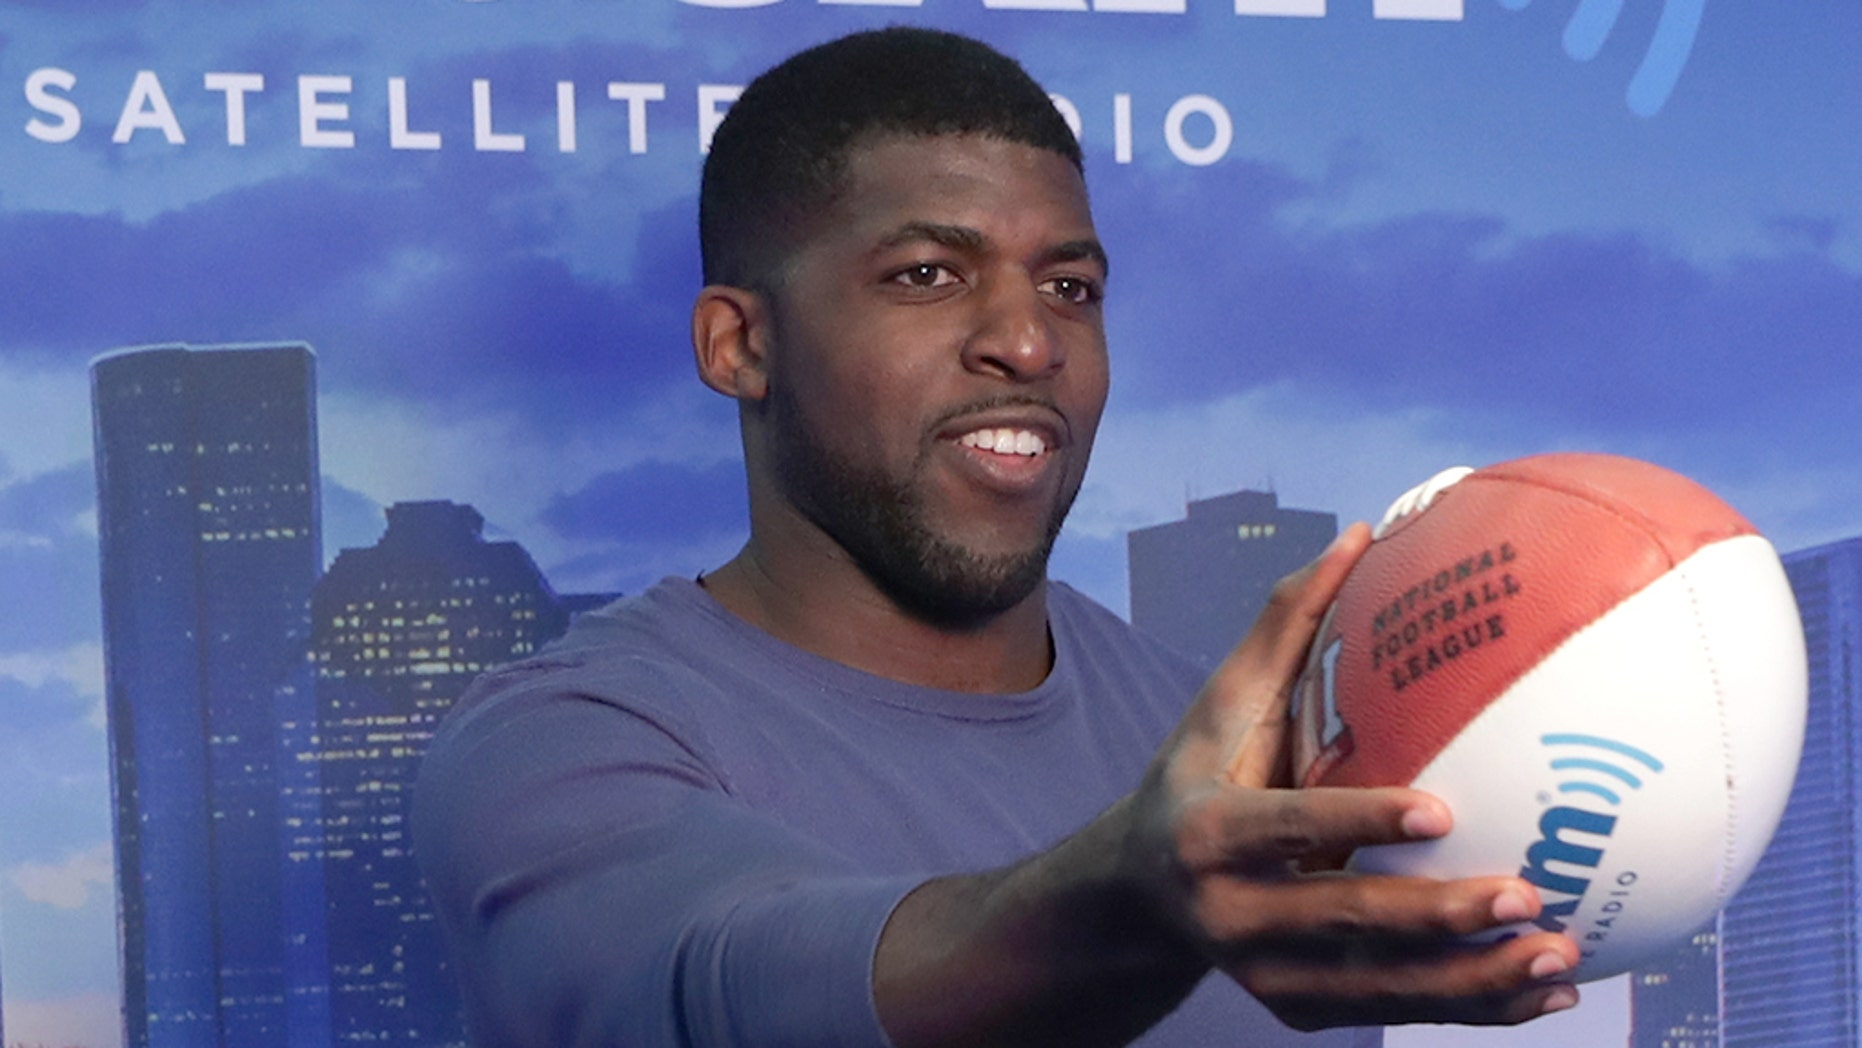 The Texas home of former NFL player and current ESPN commentator Emmanuel Acho was robbed earlier this month, according to a Monday report. (Photo by Cindy Ord/Getty Images for SiriusXM, File)